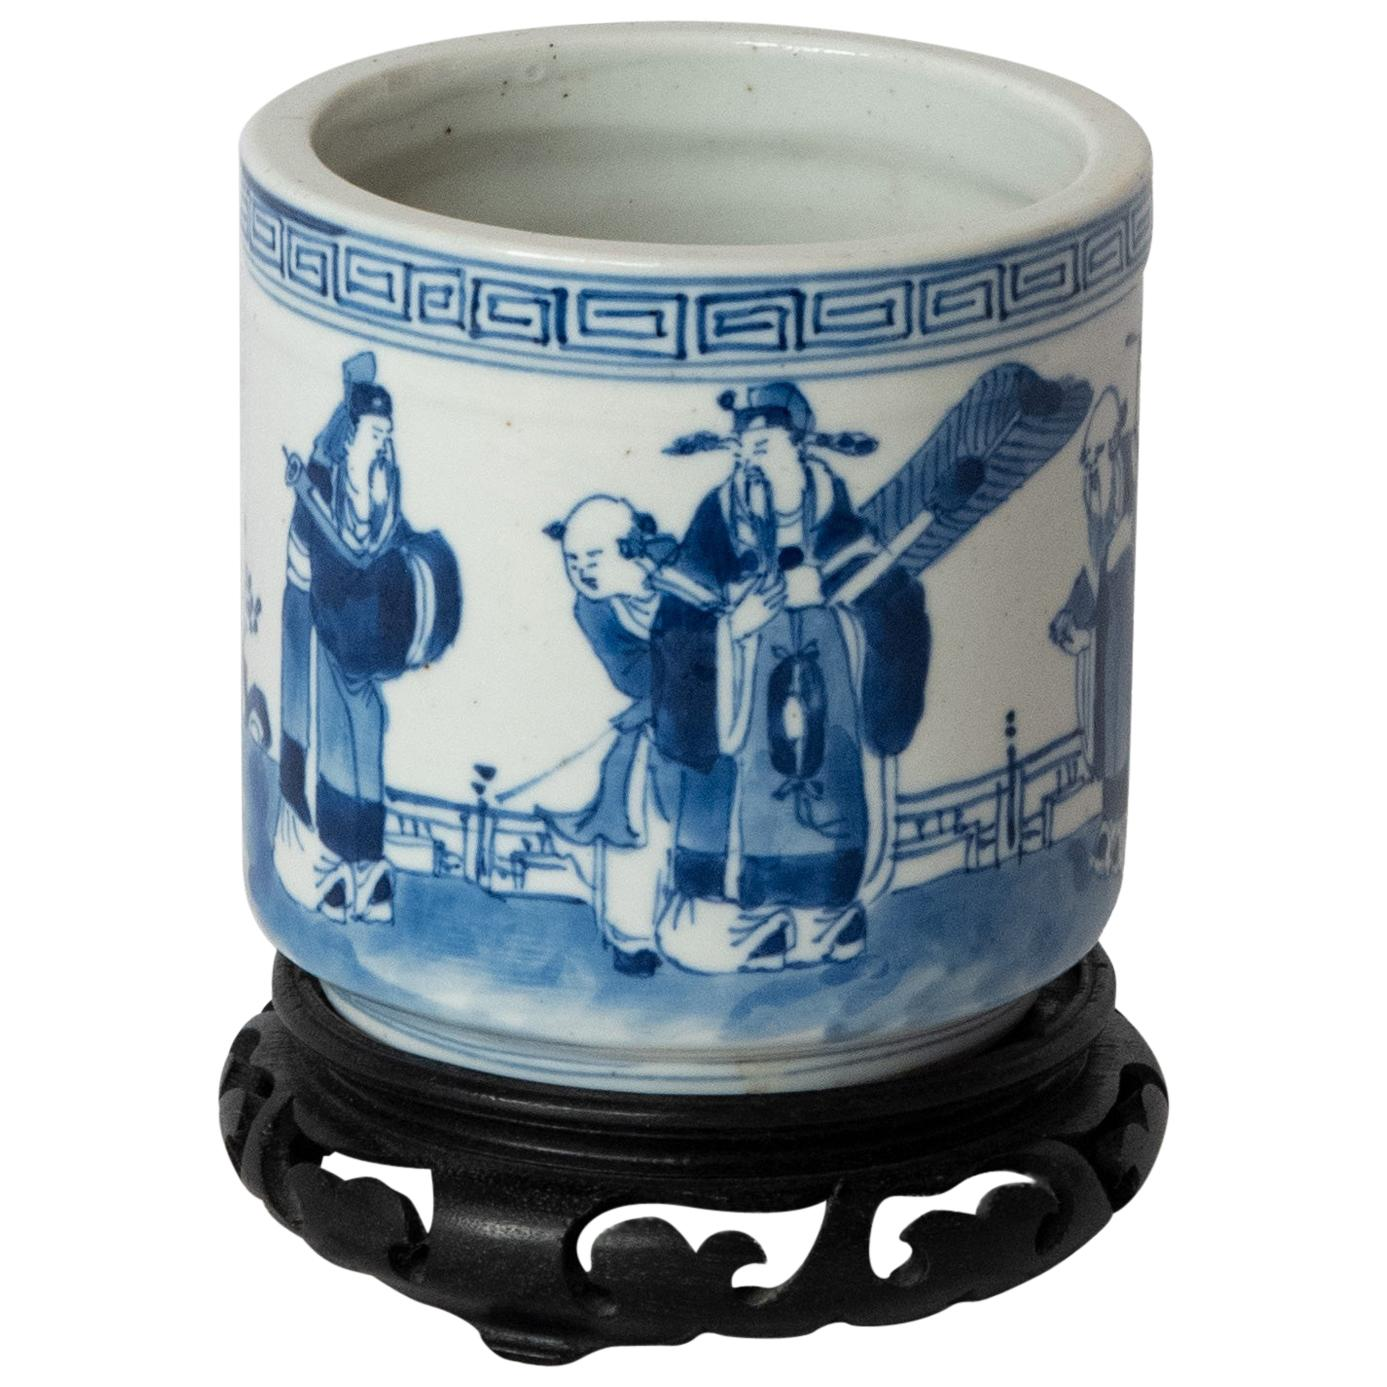 Chinese Blue and White Painted Porcelain Brush Pot with Stand, Qing Dynasty